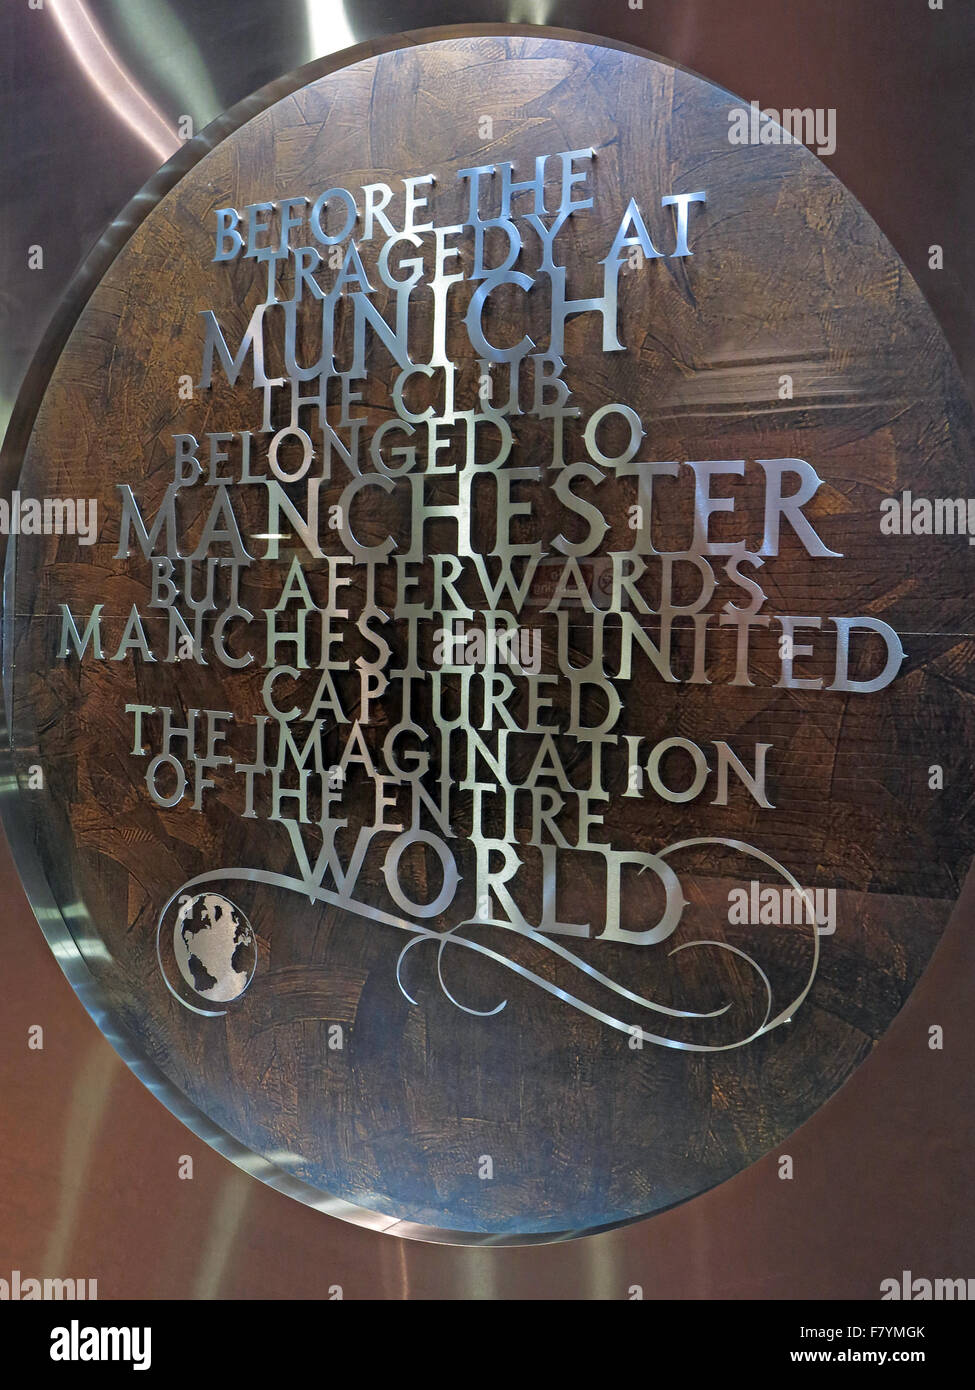 """MUFC,Munich memorial,Old Trafford, Manchester United,England,UK. """"Before the Tragedy at Munich, the club belonged Stock Photo"""